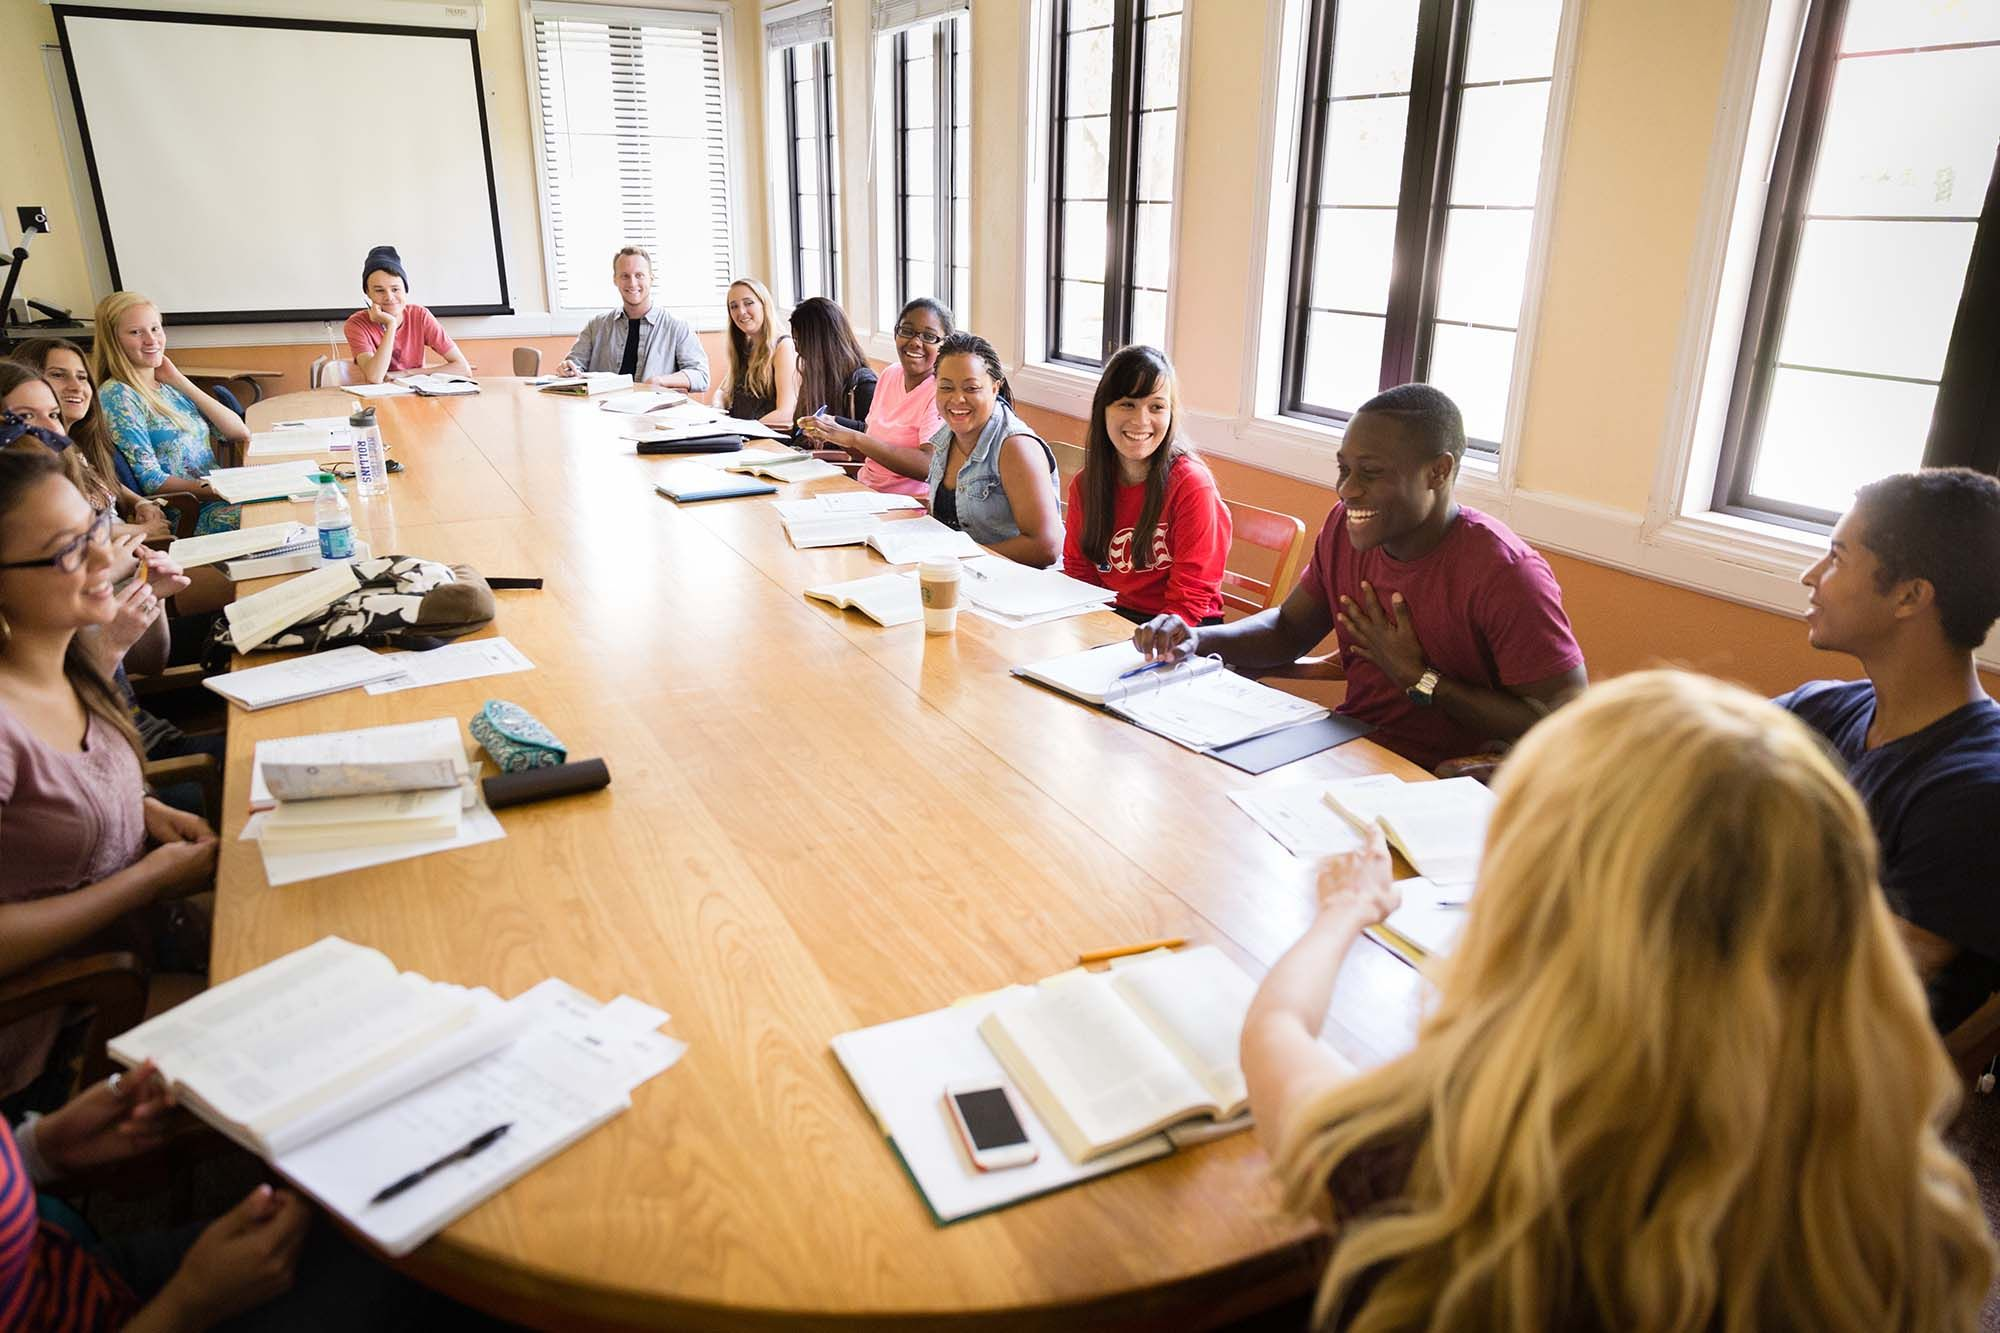 Students gather around a table during a seminar-style class session.